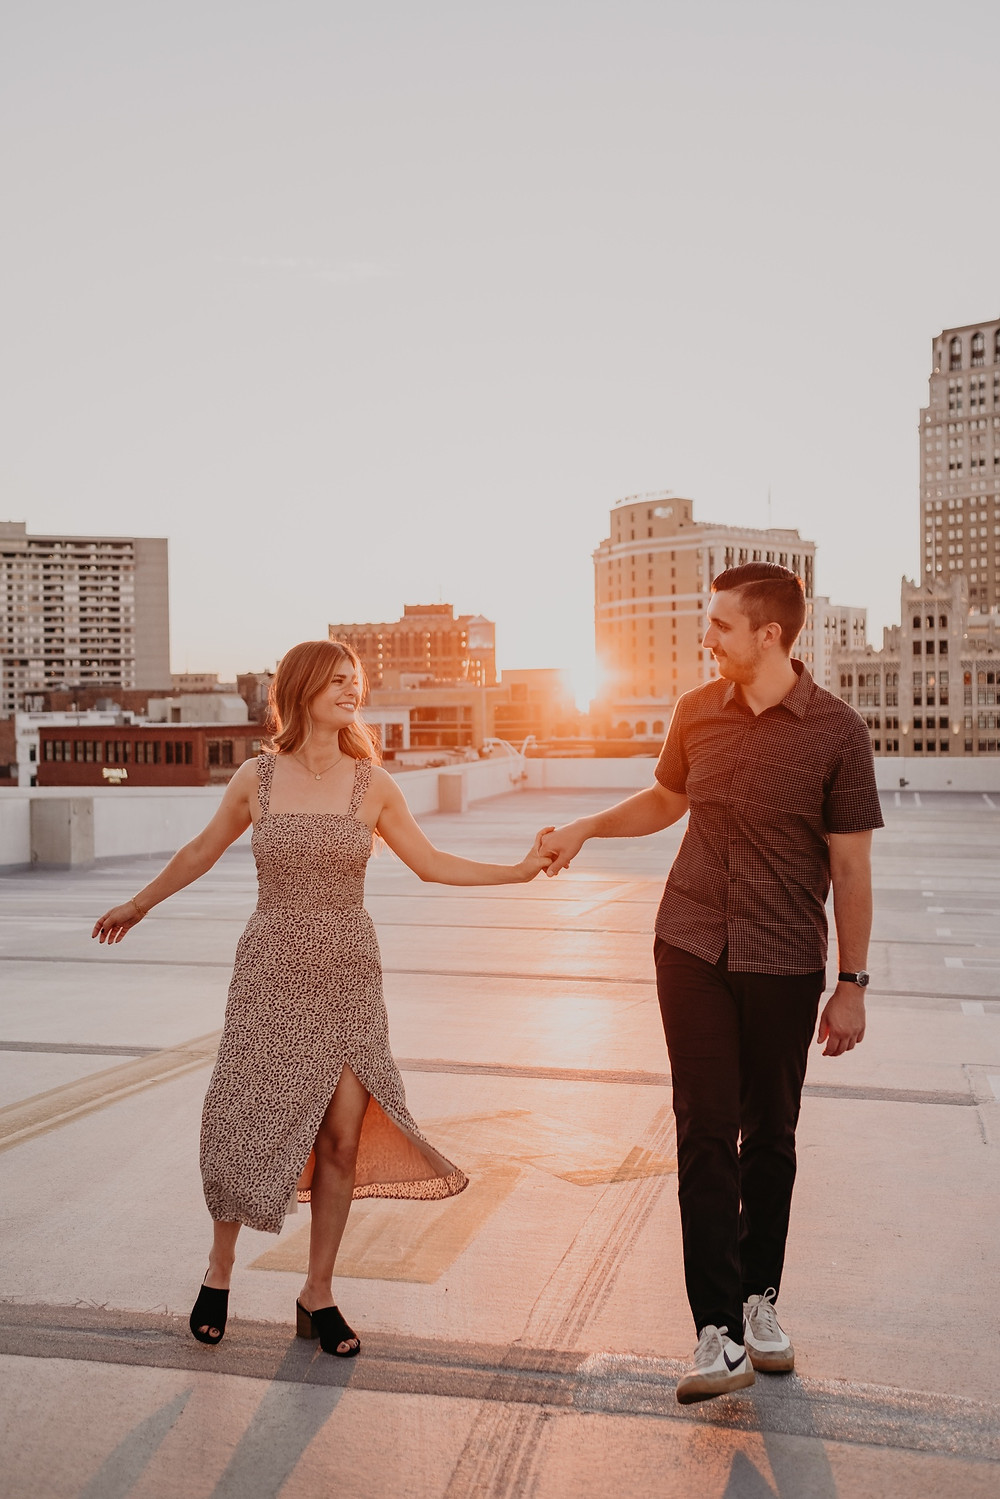 Detroit Rooftop at sunset for engagement photos. Photographed by Nicole Leanne Photography.